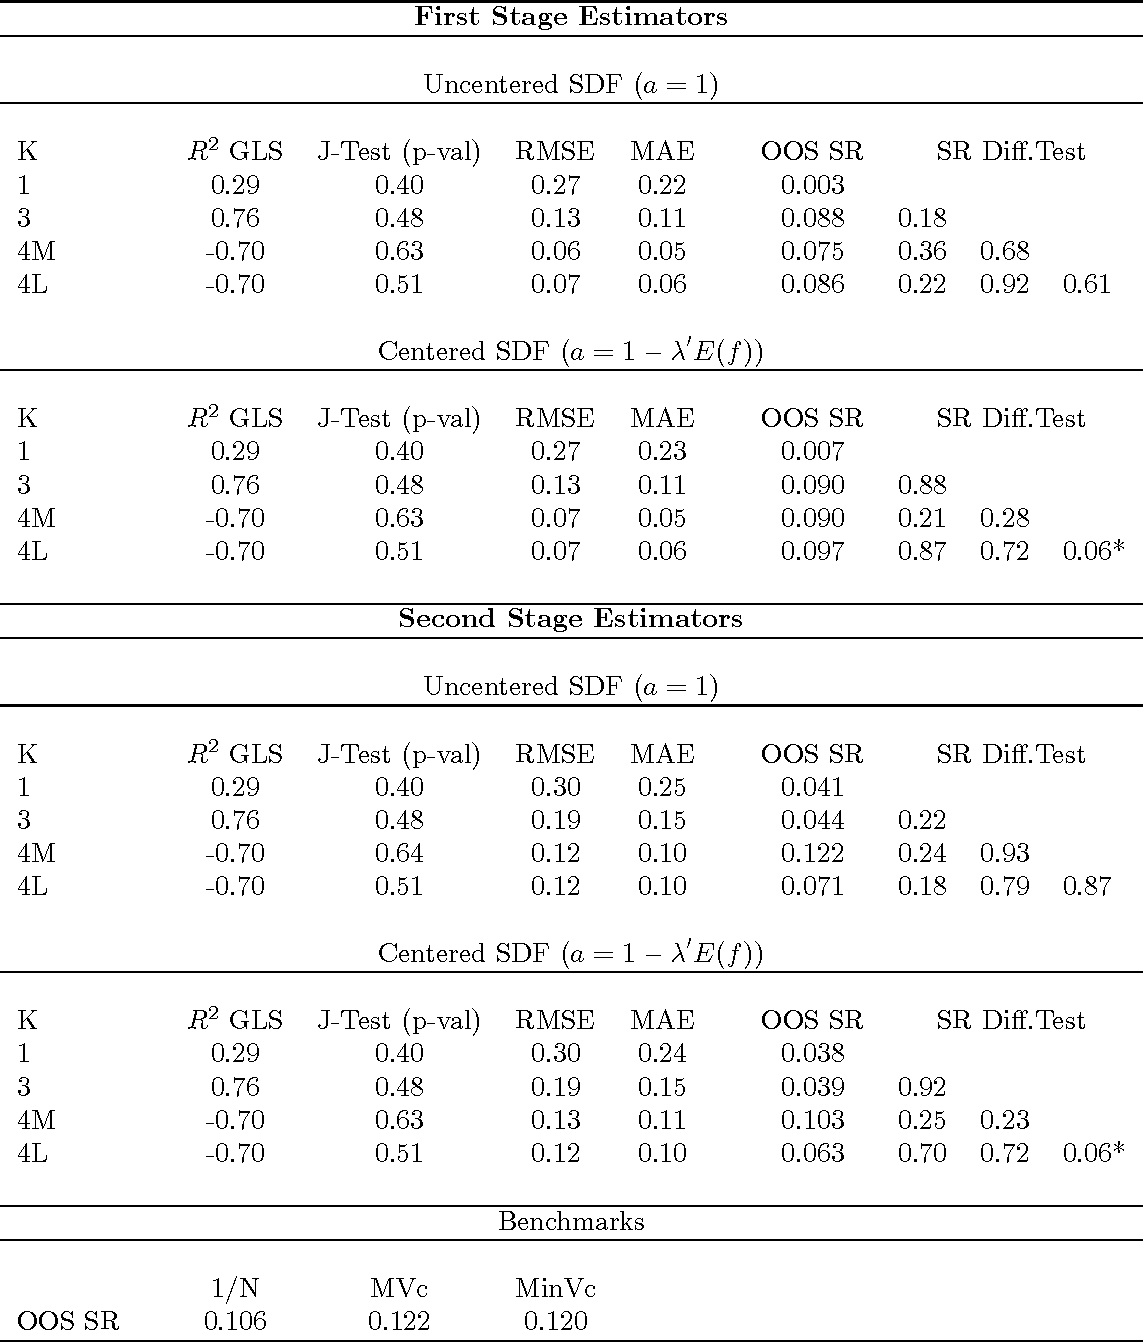 Table 13: Linear Asset Pricing Model Estimation and MV Portfolio Performance